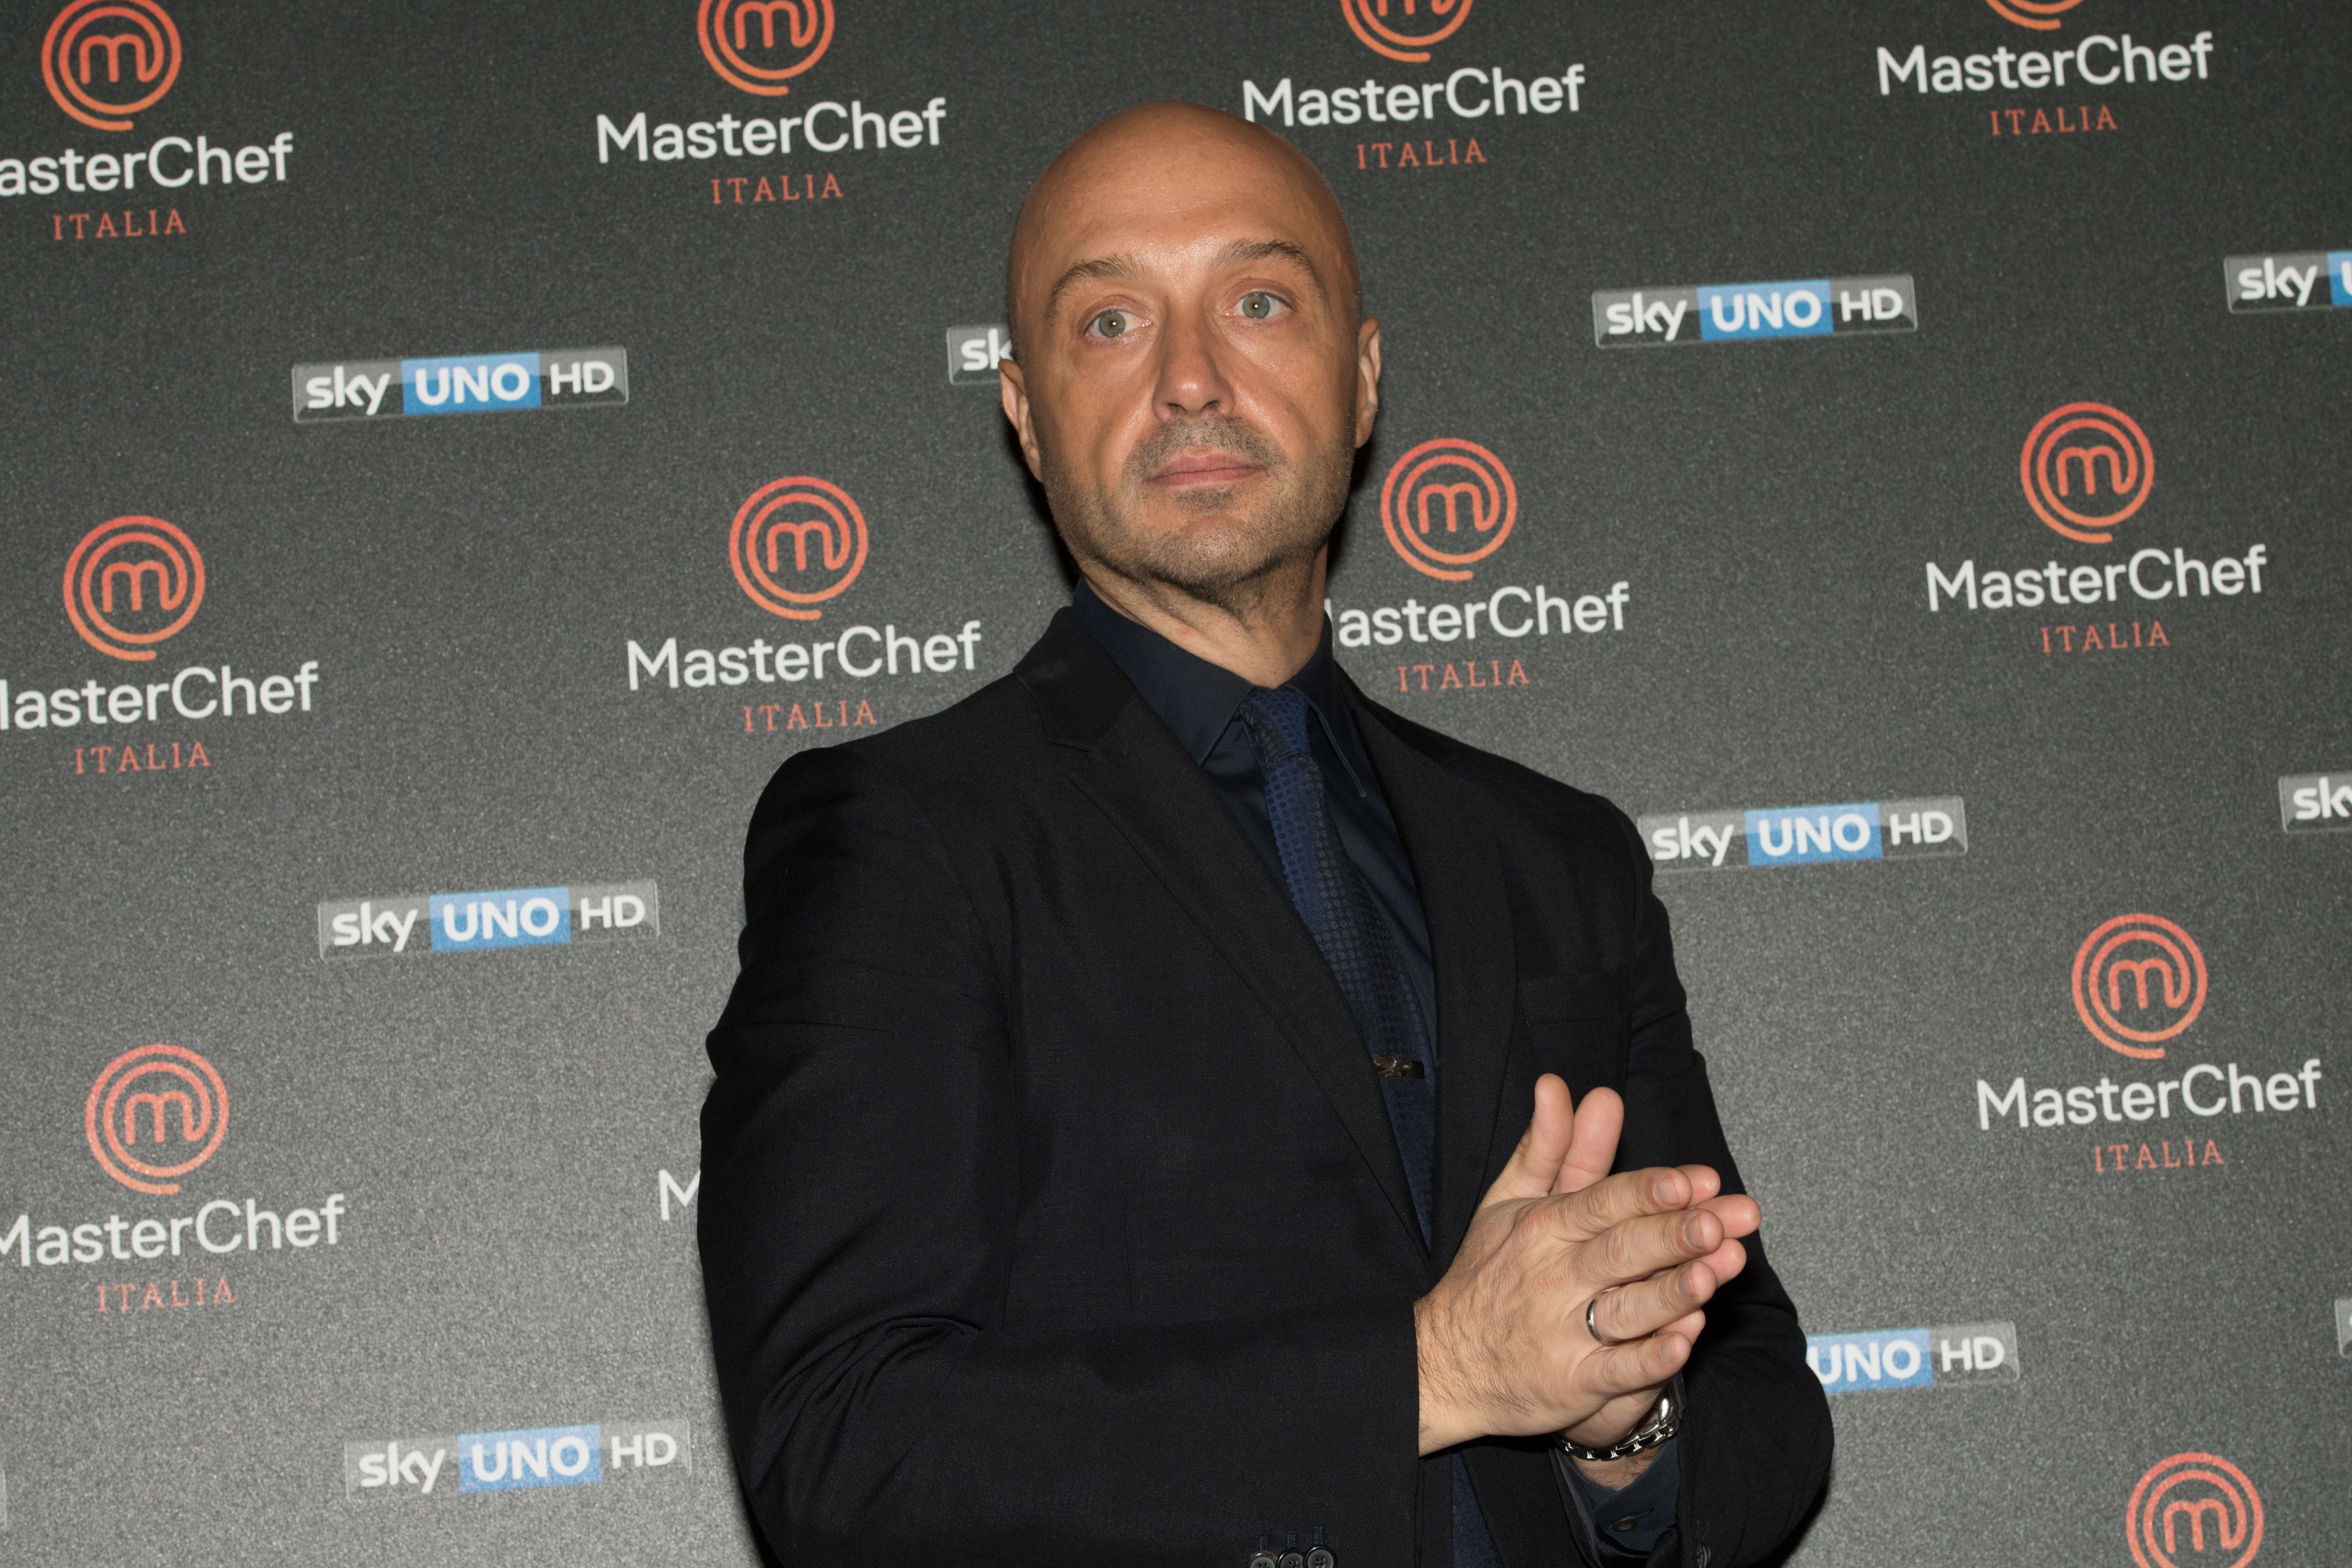 MILAN, ITALY - DECEMBER 19: (EDITORS NOTE: black and white version is available.)Joe Bastianich attends a photocall for Masterchef 6 press conference on December 19, 2016 in Milan, Italy.  (Photo by Francesco Prandoni/Getty Images)